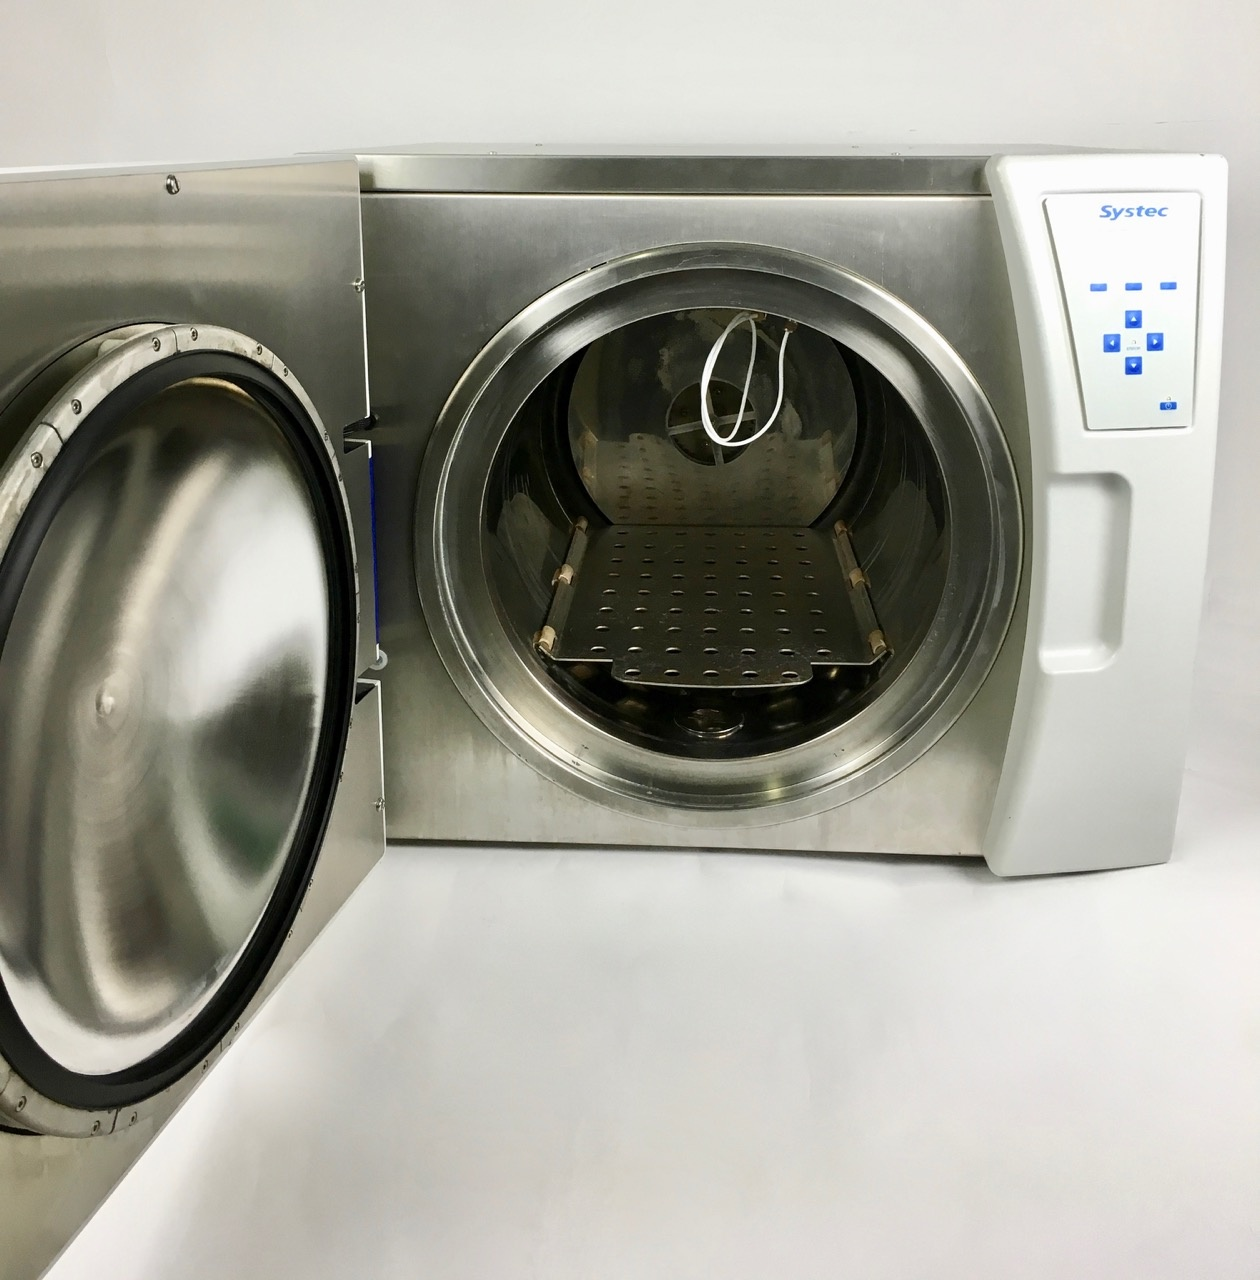 Systec Systec DX-65 table-top autoclave